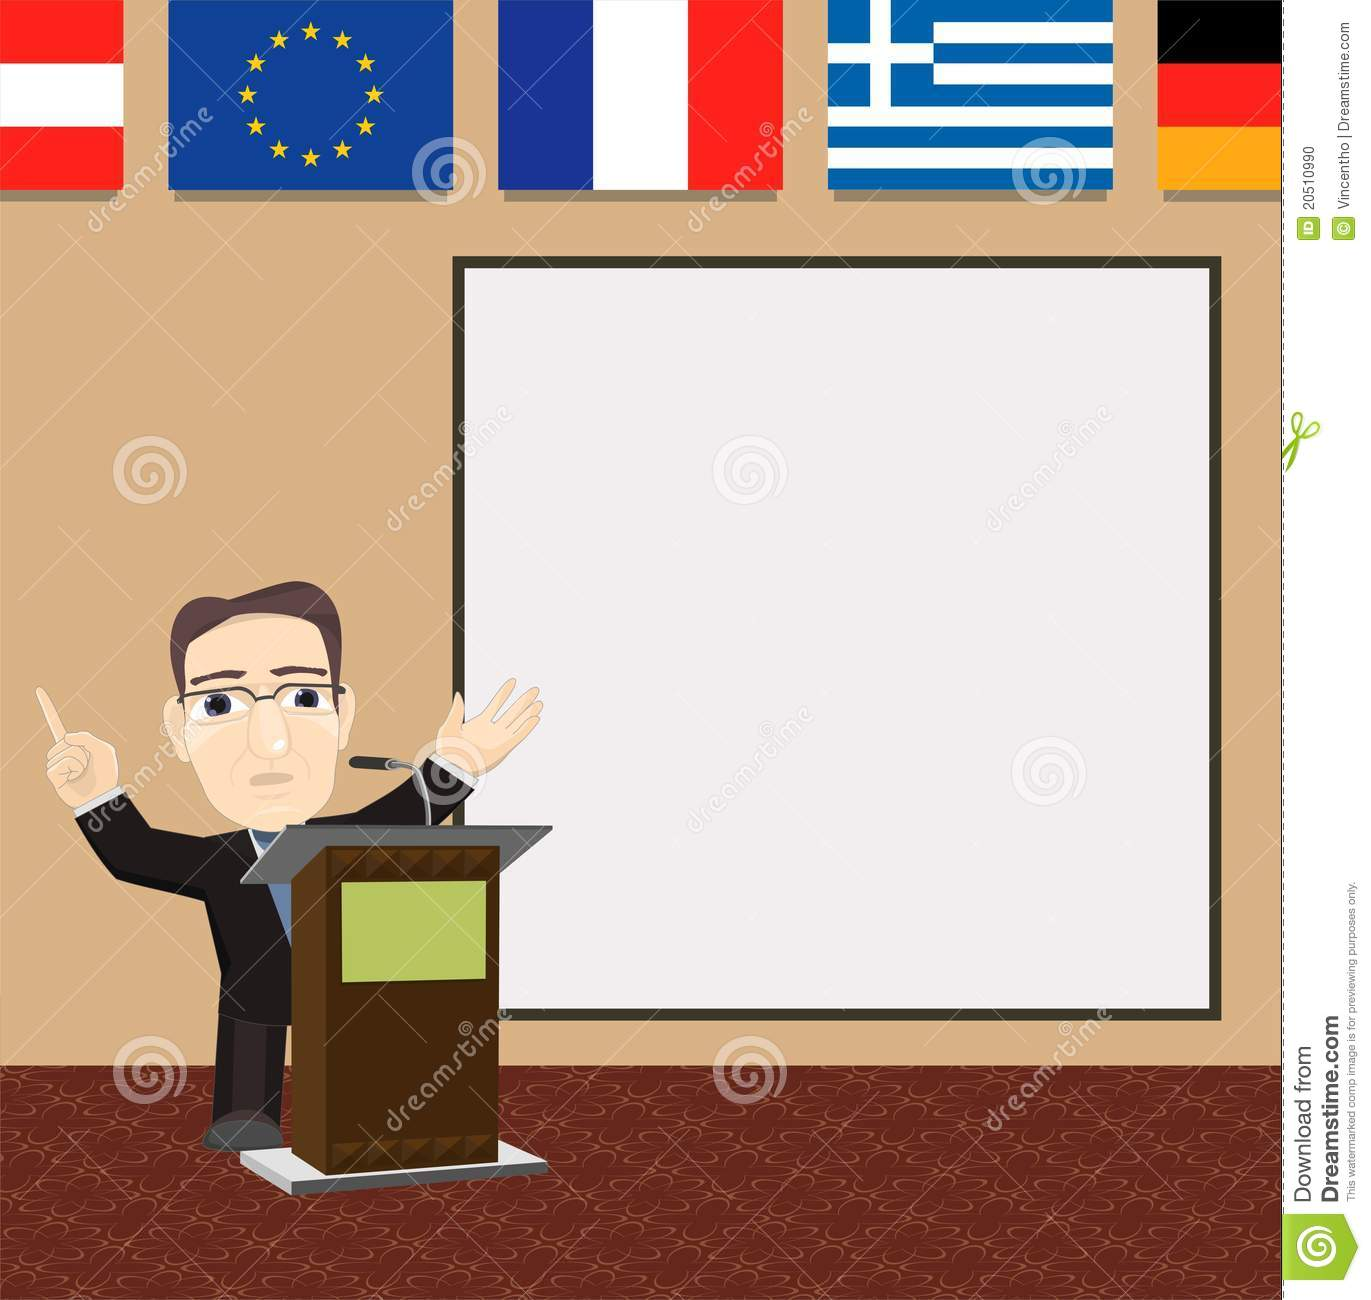 presenting debates on eu democratic deficit And despite her frustration with the role britain has played in several past eu debates,  in eu feud (06/04/2014) the democratic deficit  spiegel-online.